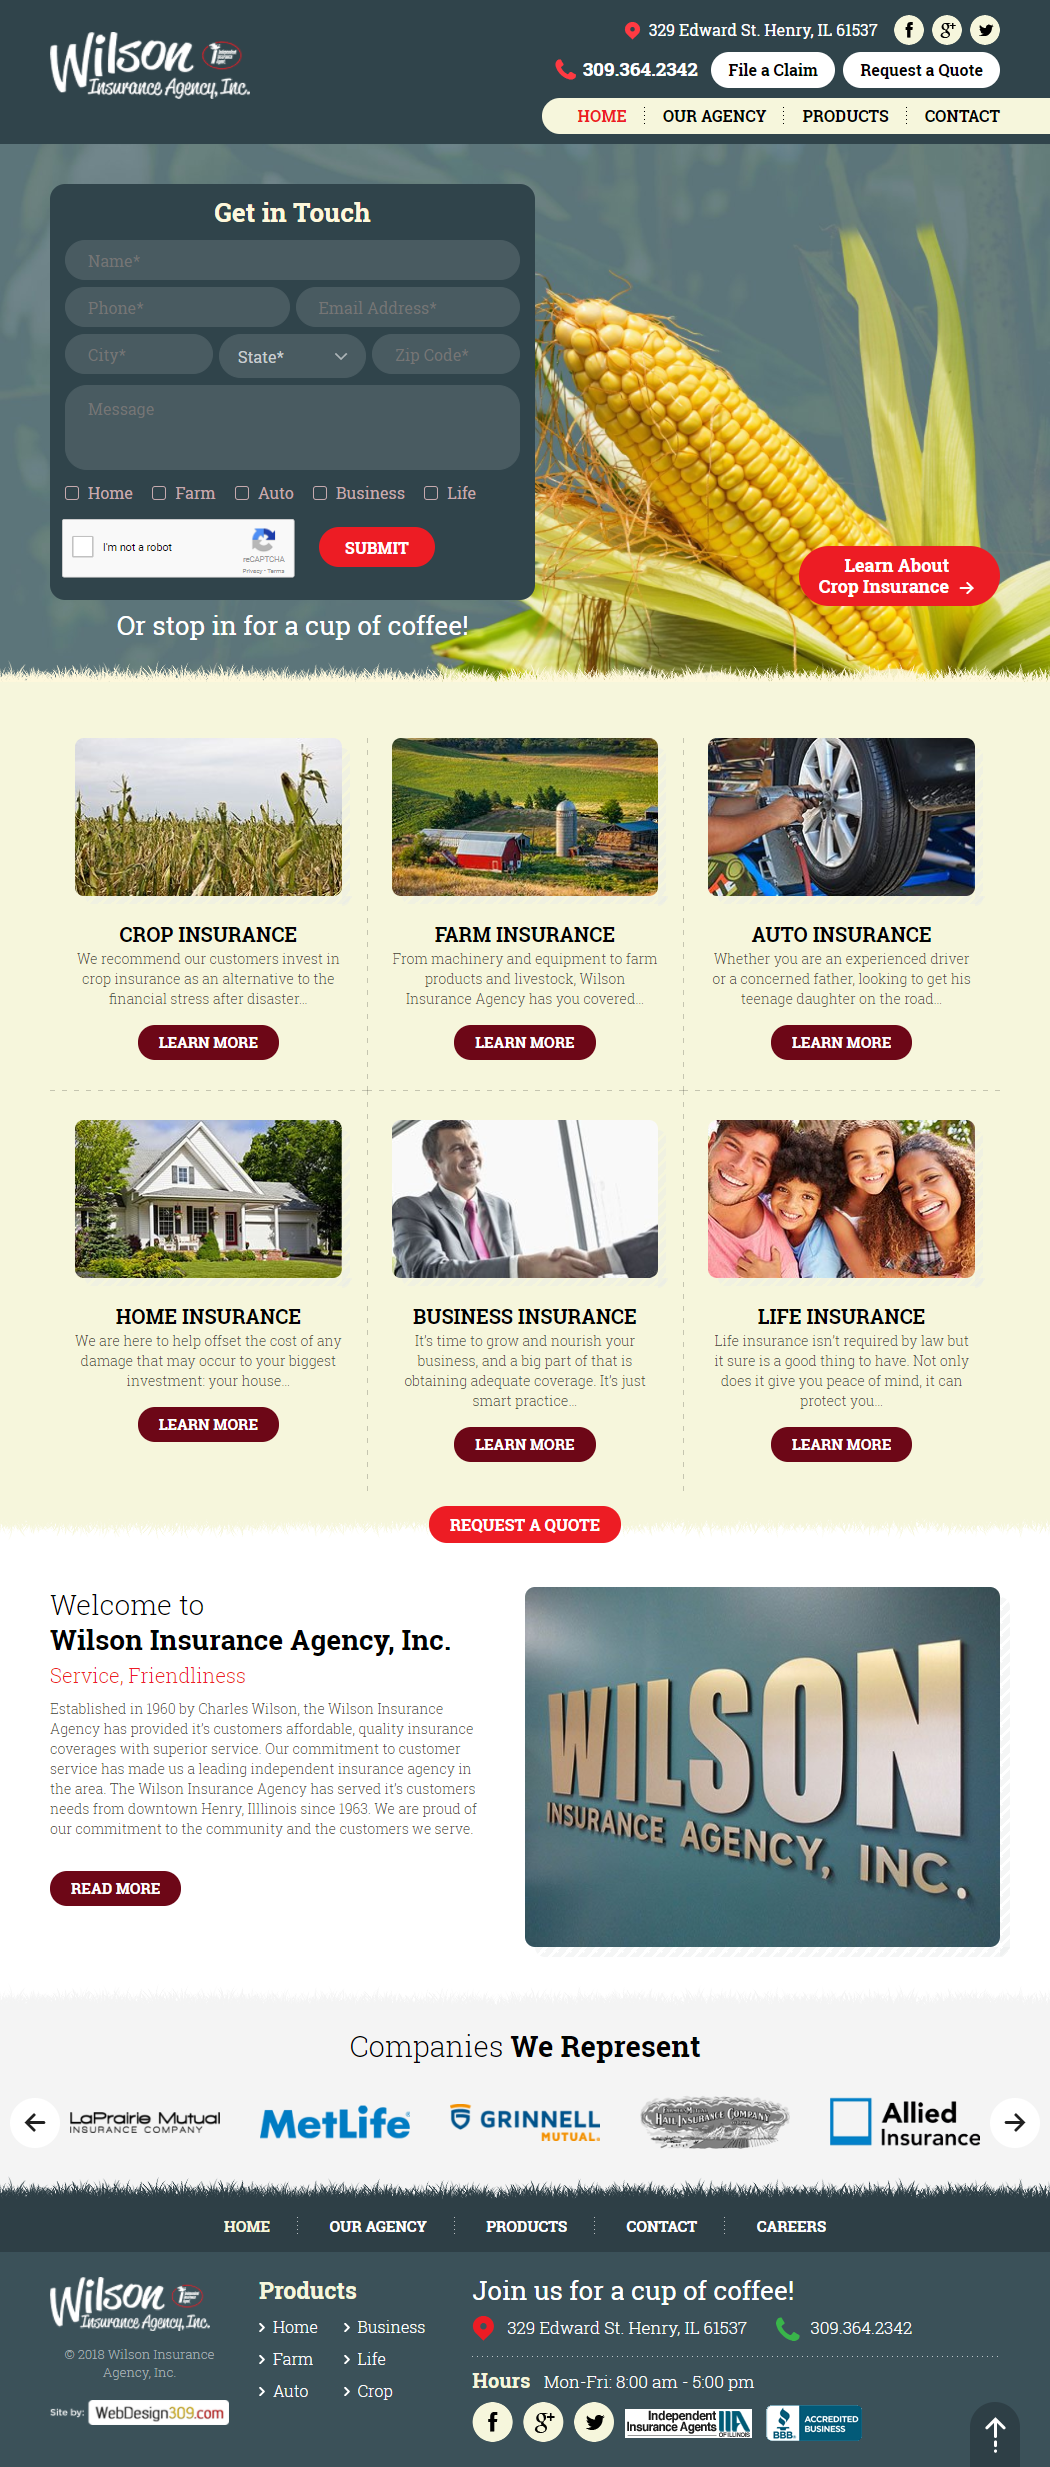 Established in 1960 by Charles Wilson, Wilson Insurance